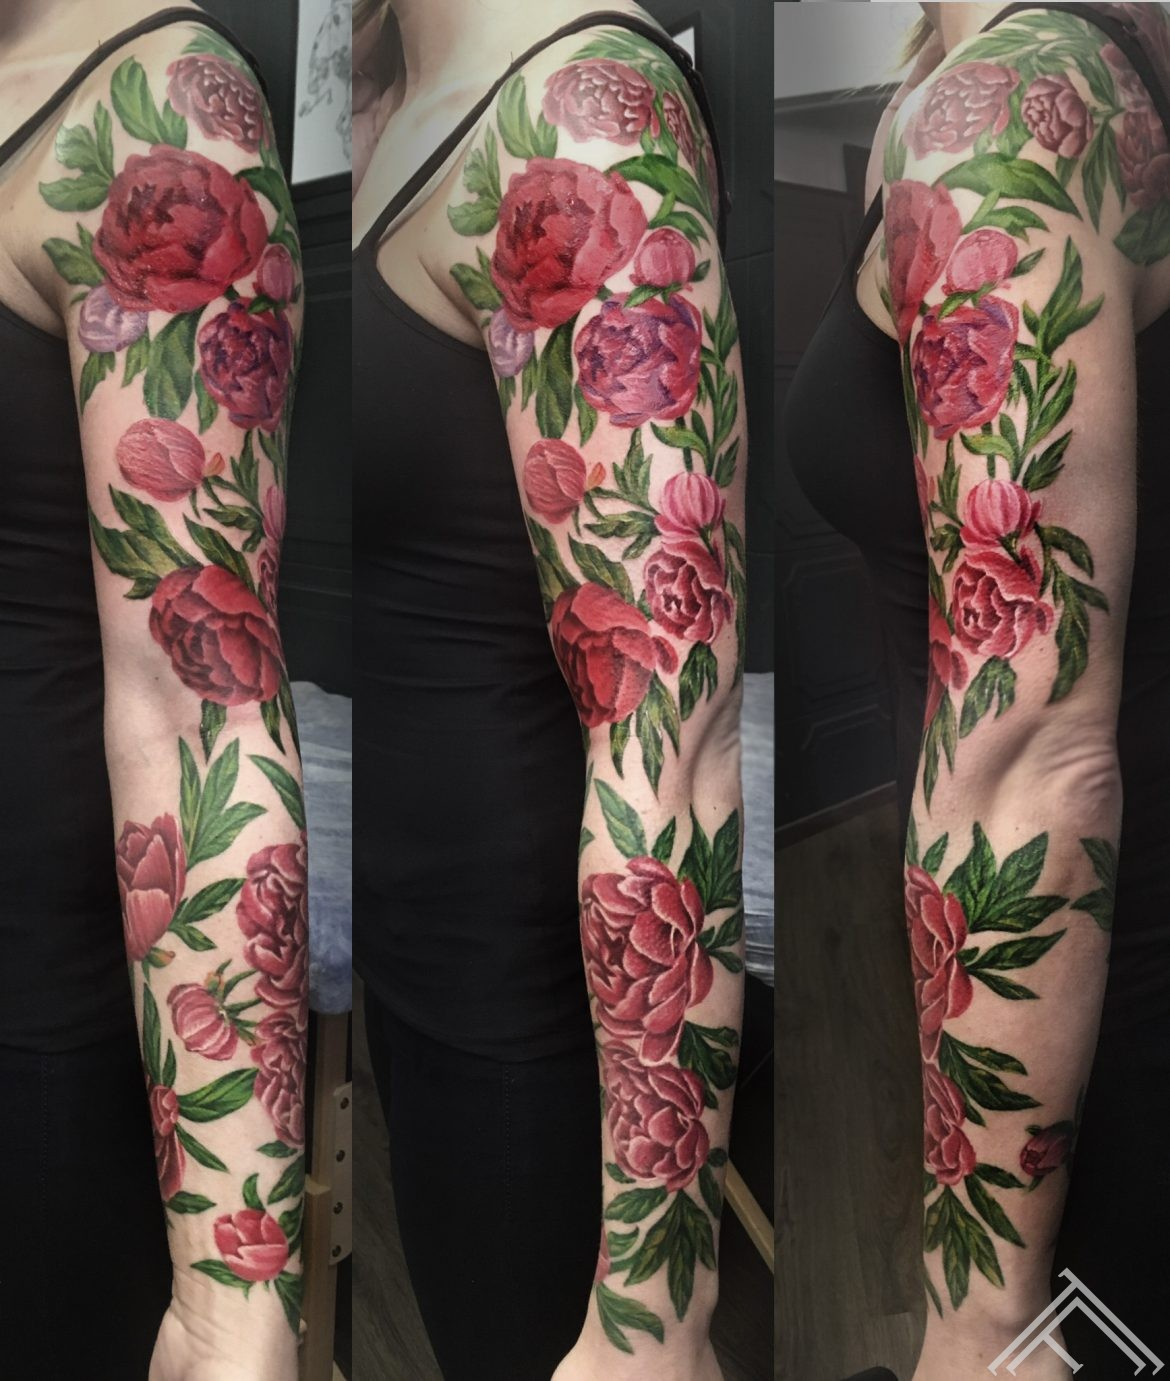 sleeve-sleevetattoo-flowersleeve-tattoofrequency-razin-tattoo-flowers-peony-tetovejums-peonijas-